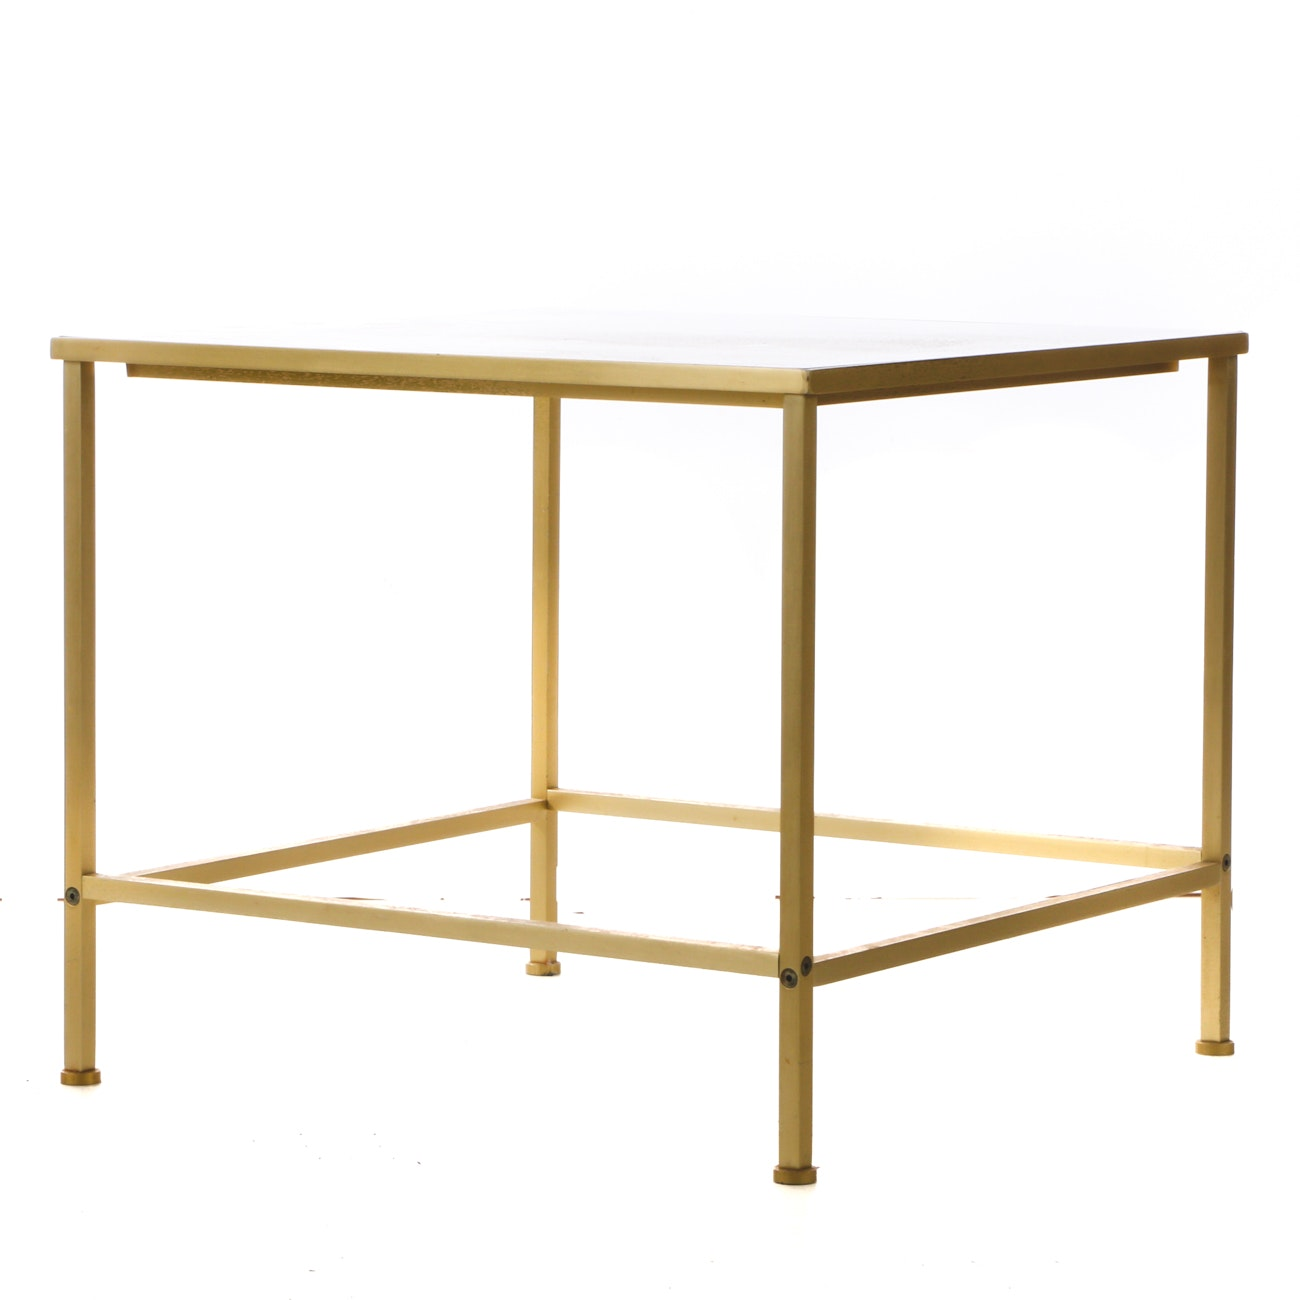 Brass-Tone Framed Occasional Table